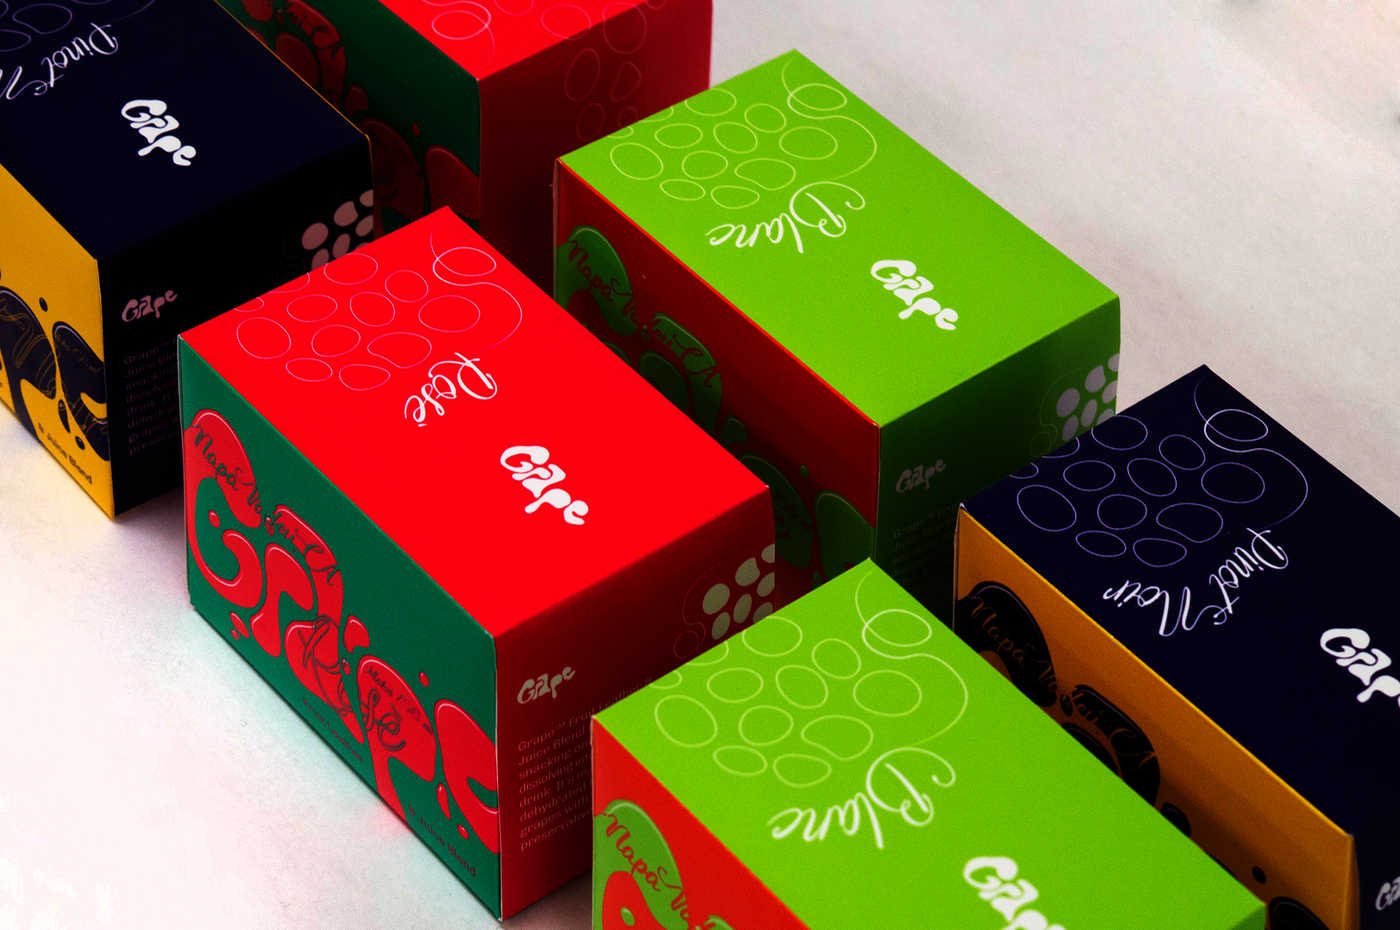 A fictitious branding project for a fruit leather product.